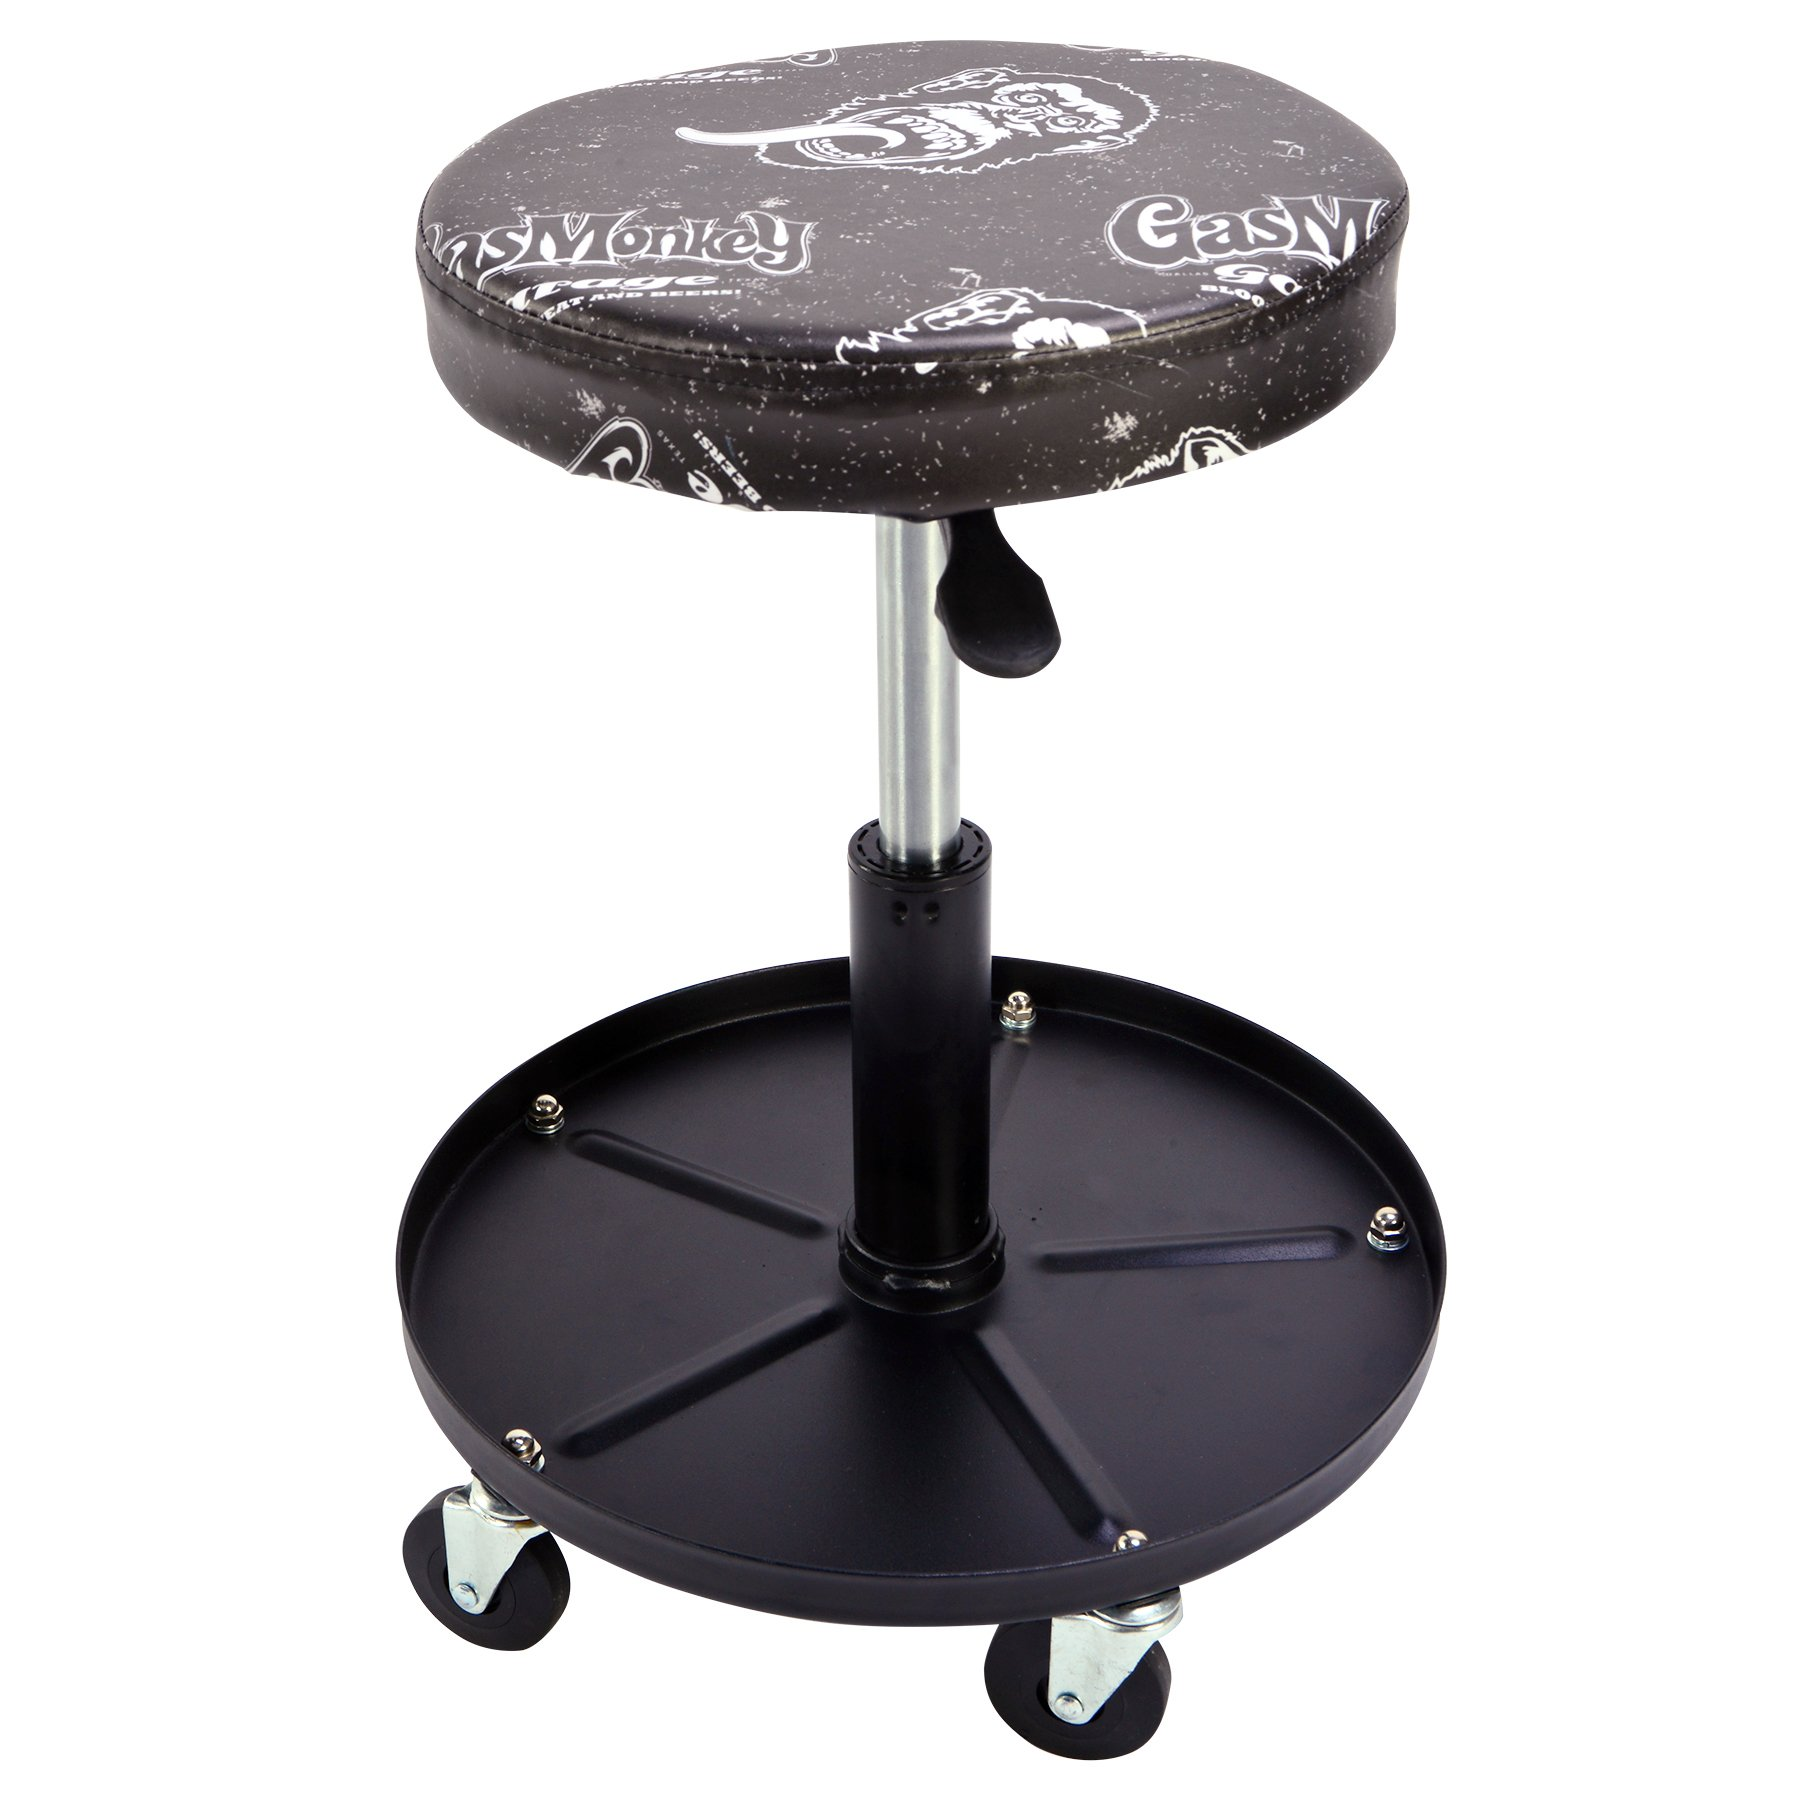 Gas Monkey Pneumatic Garage Chair with Tool Tray - 5 Rolling Casters with 300 Lbs Capacity by Gas Monkey